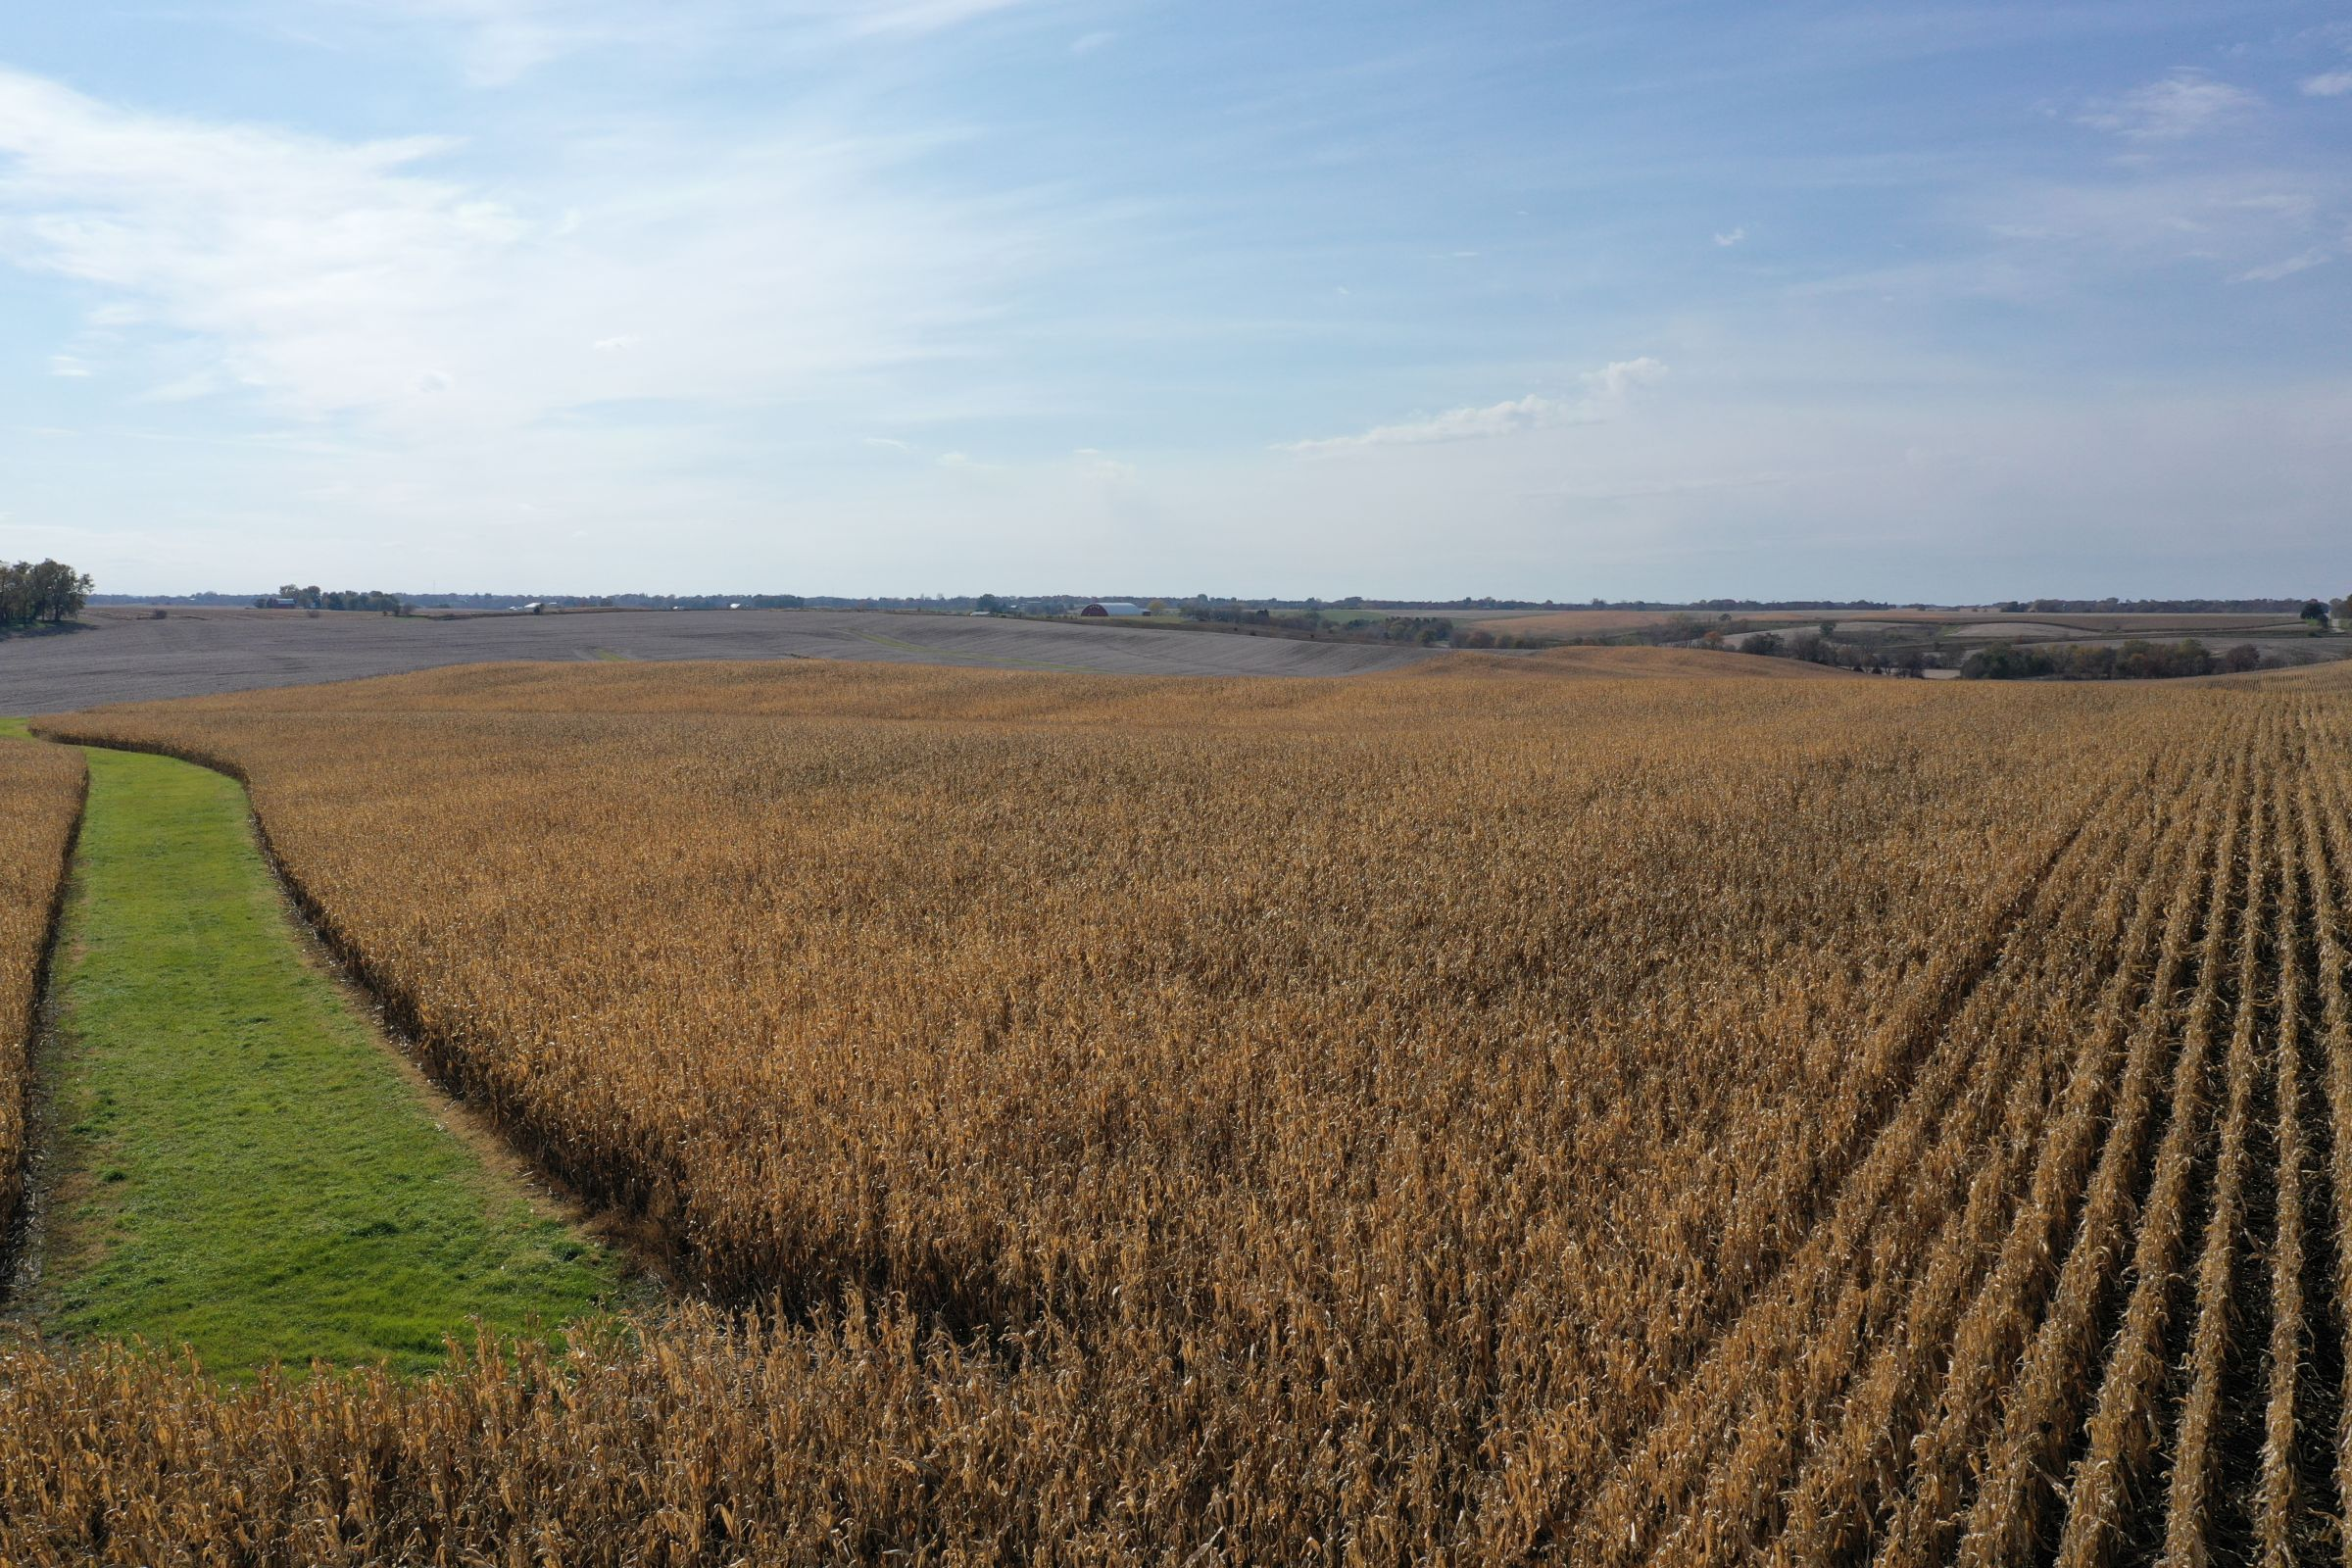 14747-iowa-highway-14-newton-50208-7-2019-10-28-212702.JPG